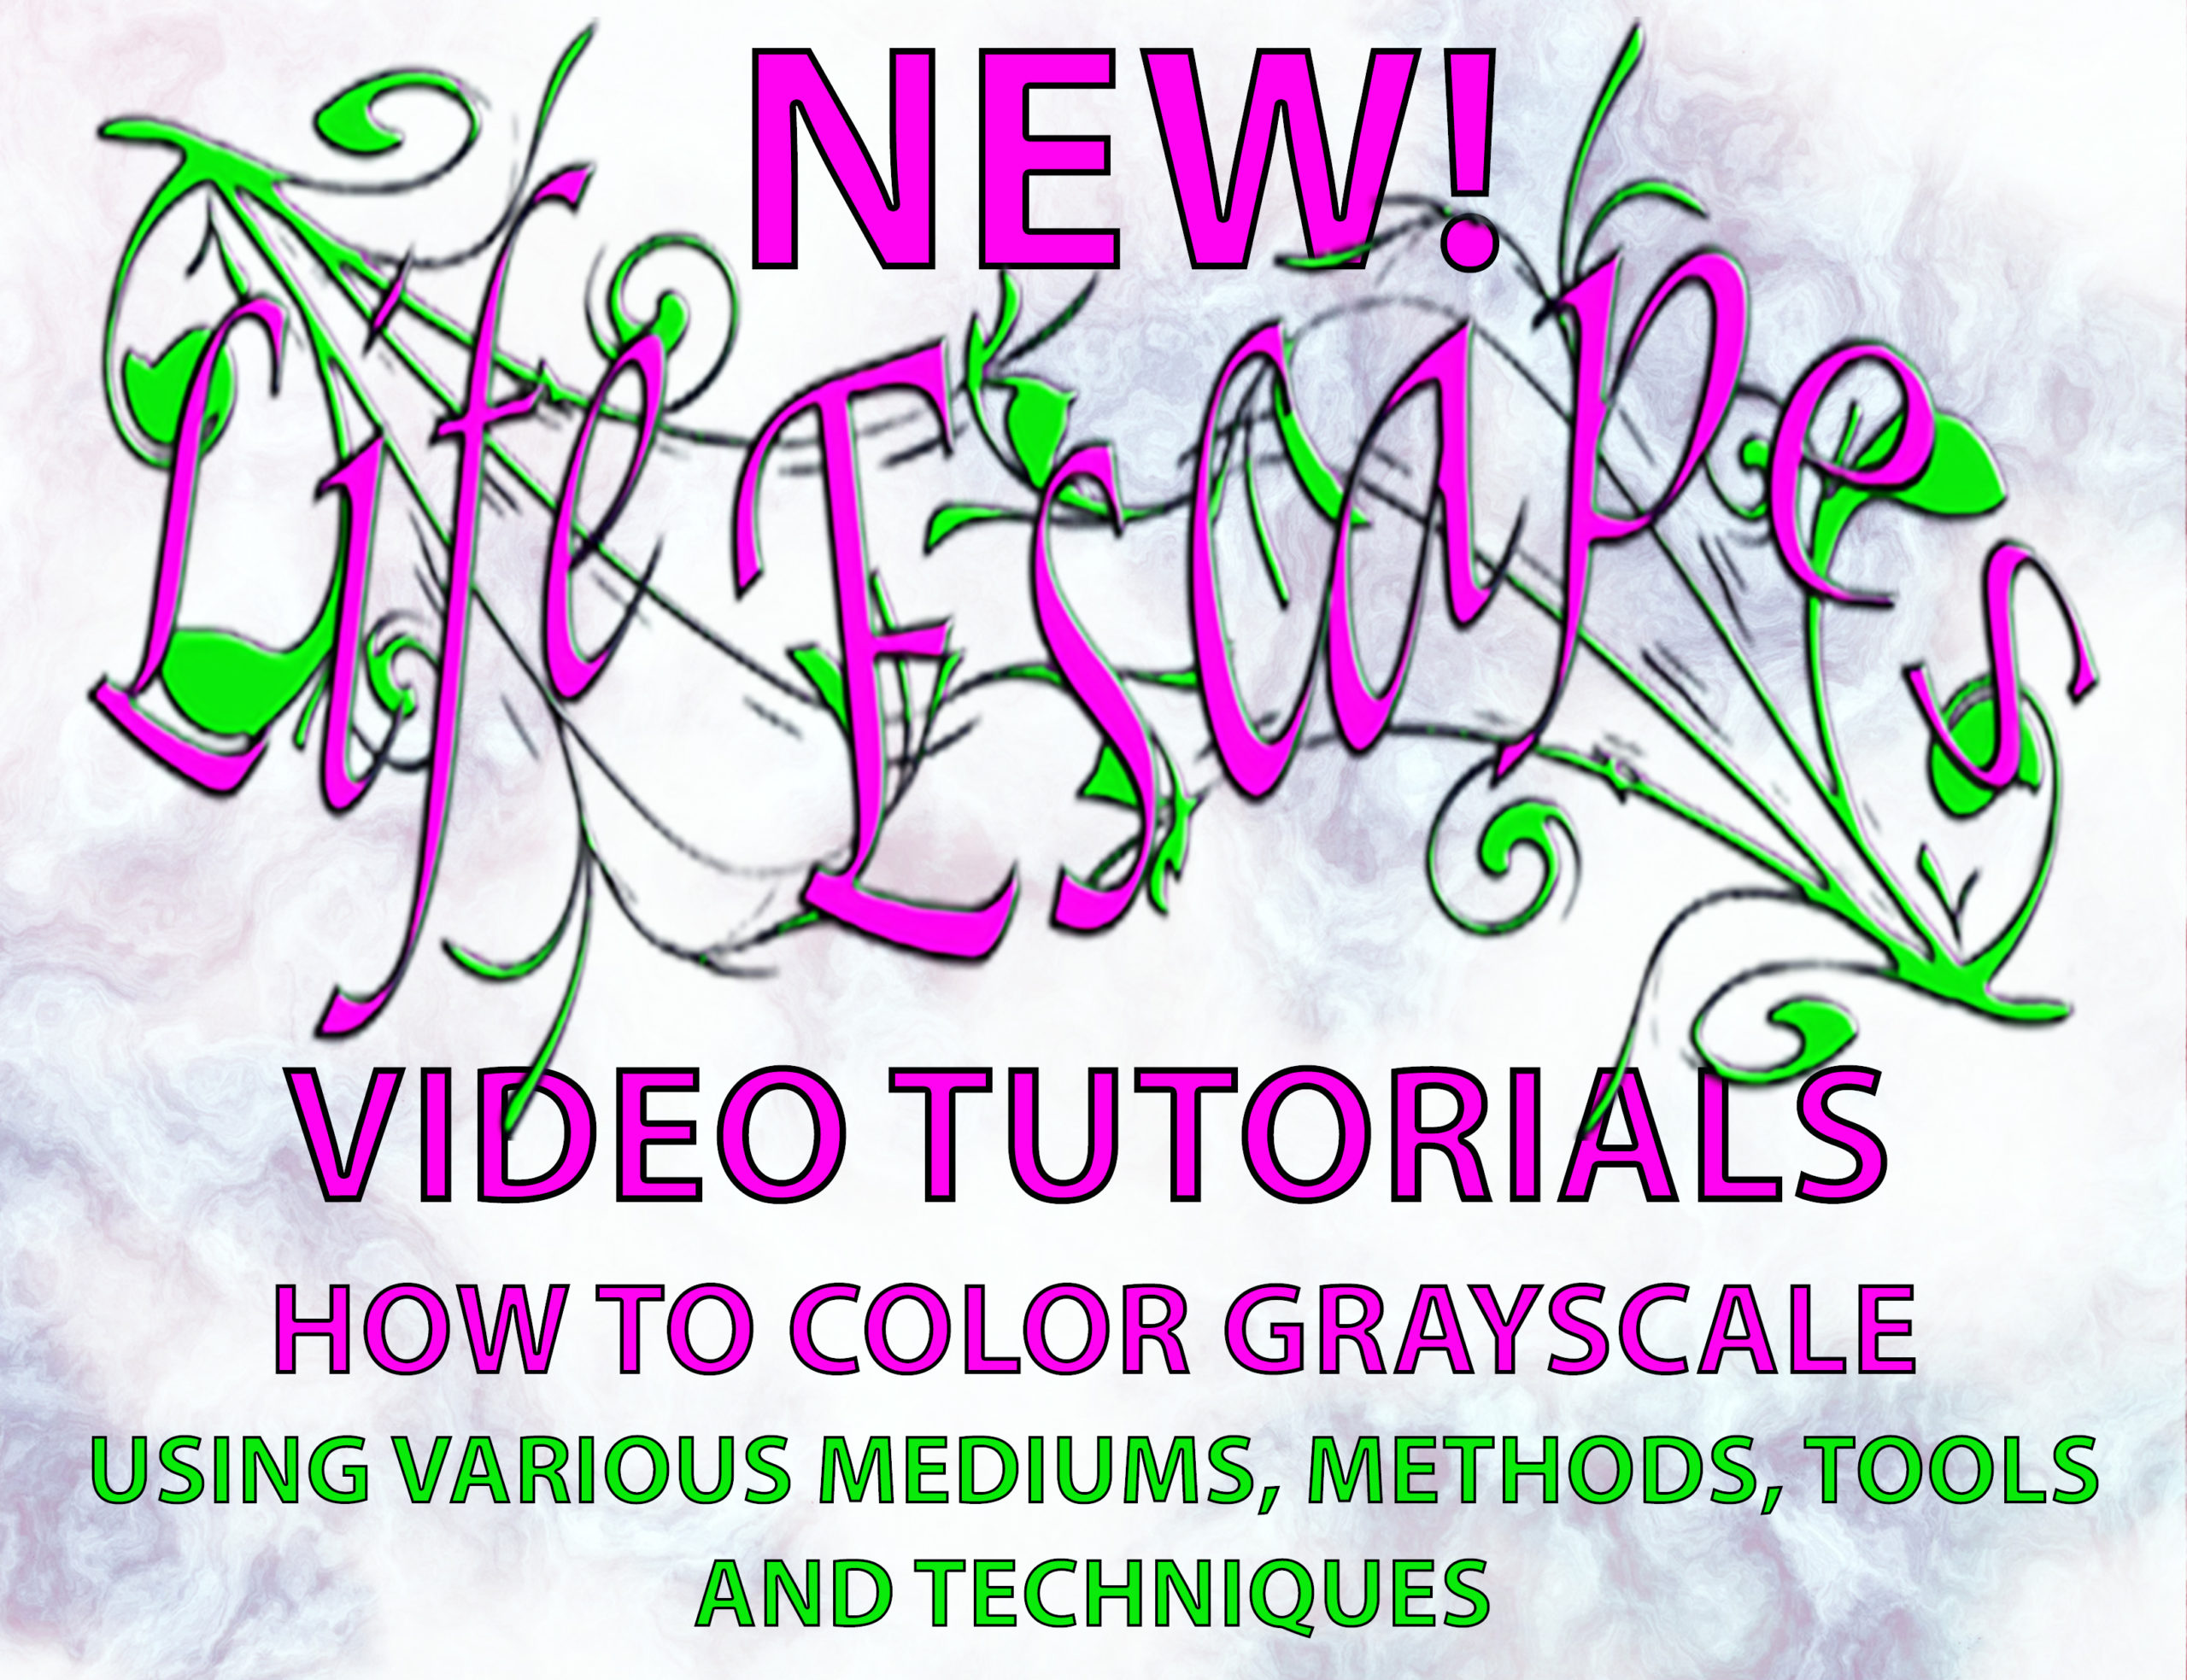 How to color grayscale video tutorials